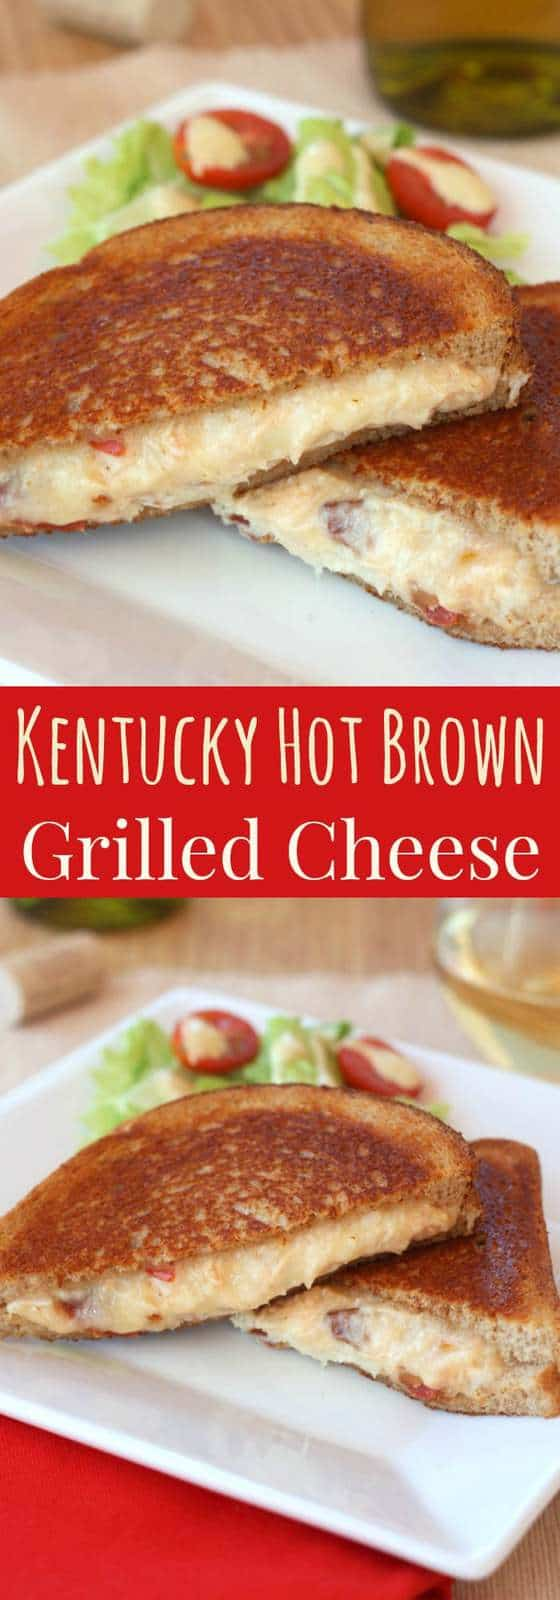 Kentucky Hot Brown Grilled Cheese Sandwich